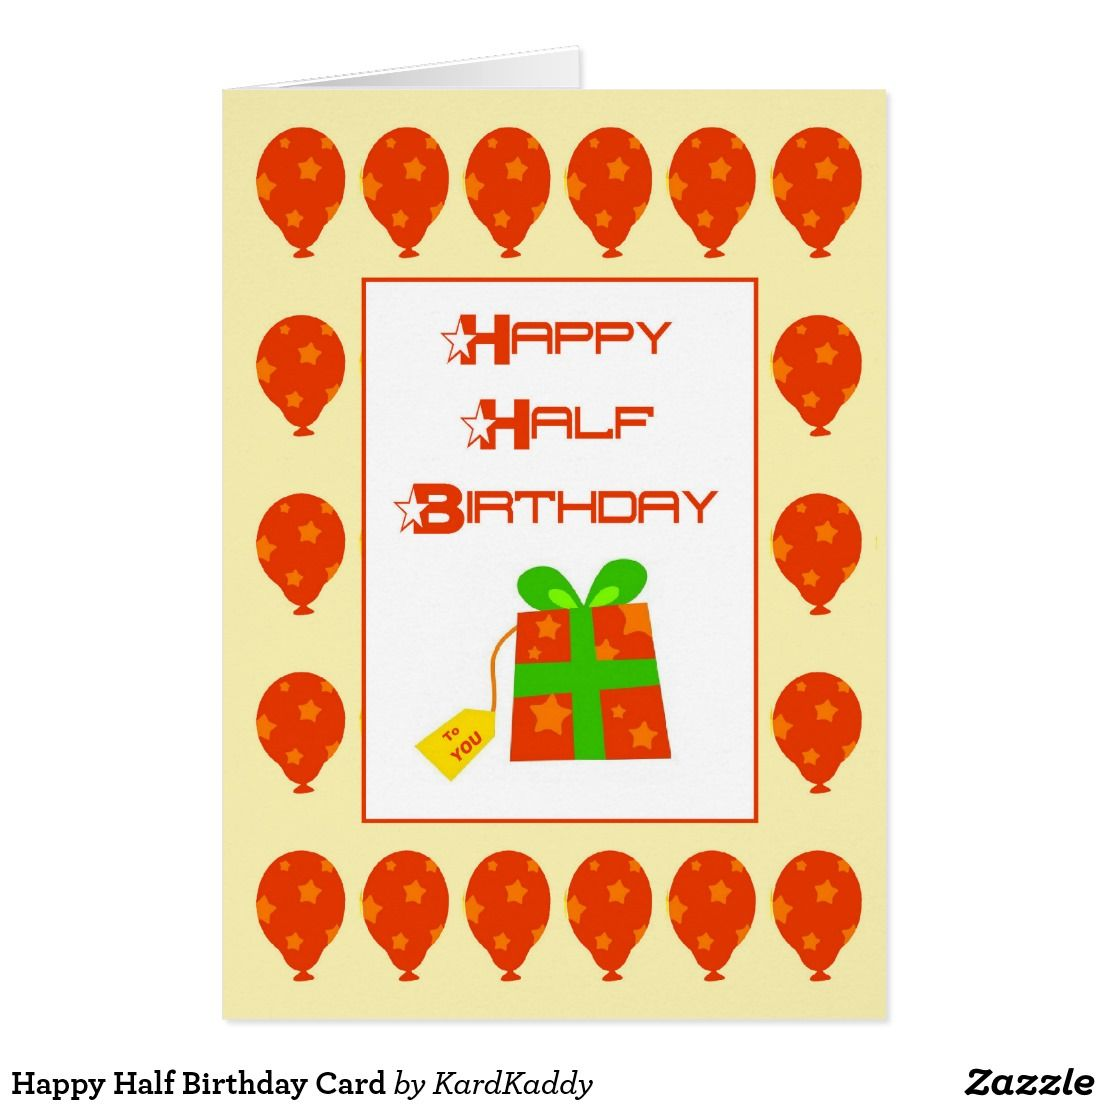 Happy half birthday card birthday pinterest happy half birthday happy half birthday card bookmarktalkfo Image collections